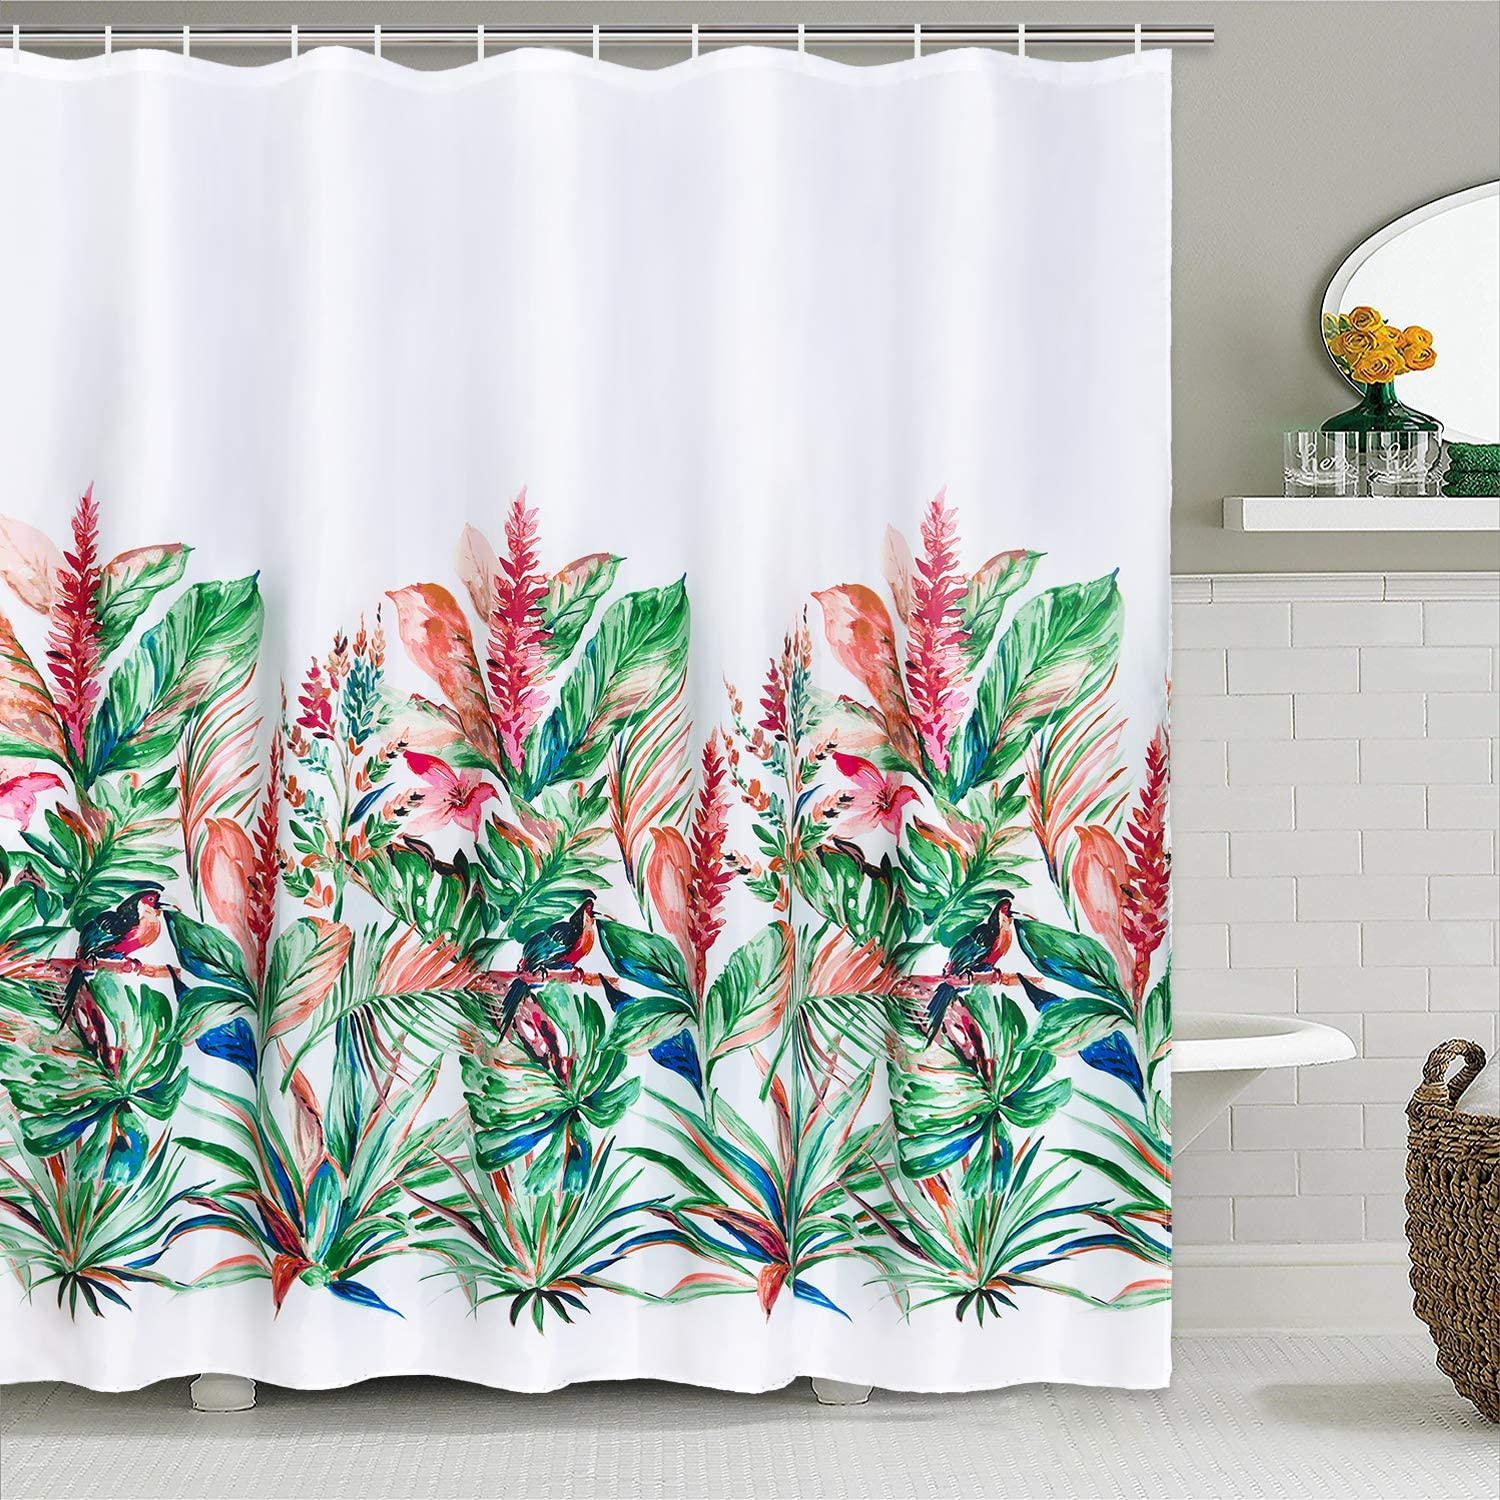 Plant Shower Curtain with 12 Hooks Watercolor Flower Shower Curtain for Bathroom Polyester Waterproof Fabric Shower Curtain